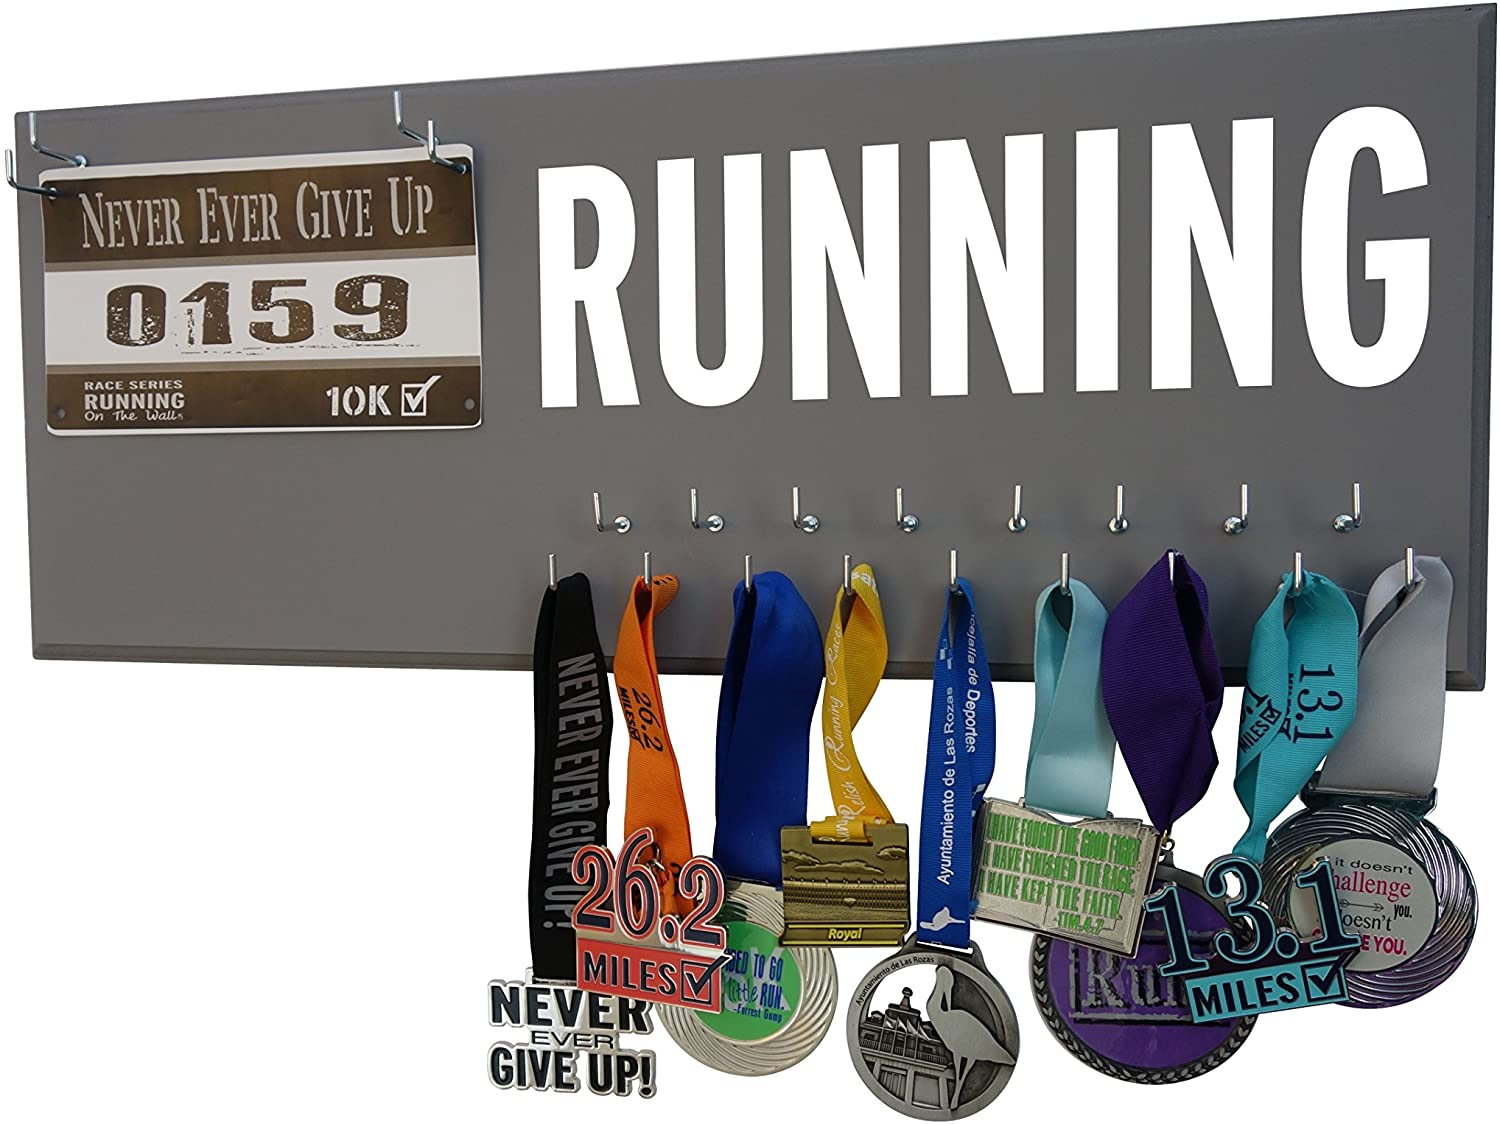 Running On The Wall - Race Bib Medal Display Rack- Wall Mounted Sports Medal Holder Hanger 5K, 10K Marathons Runners - Running Gift